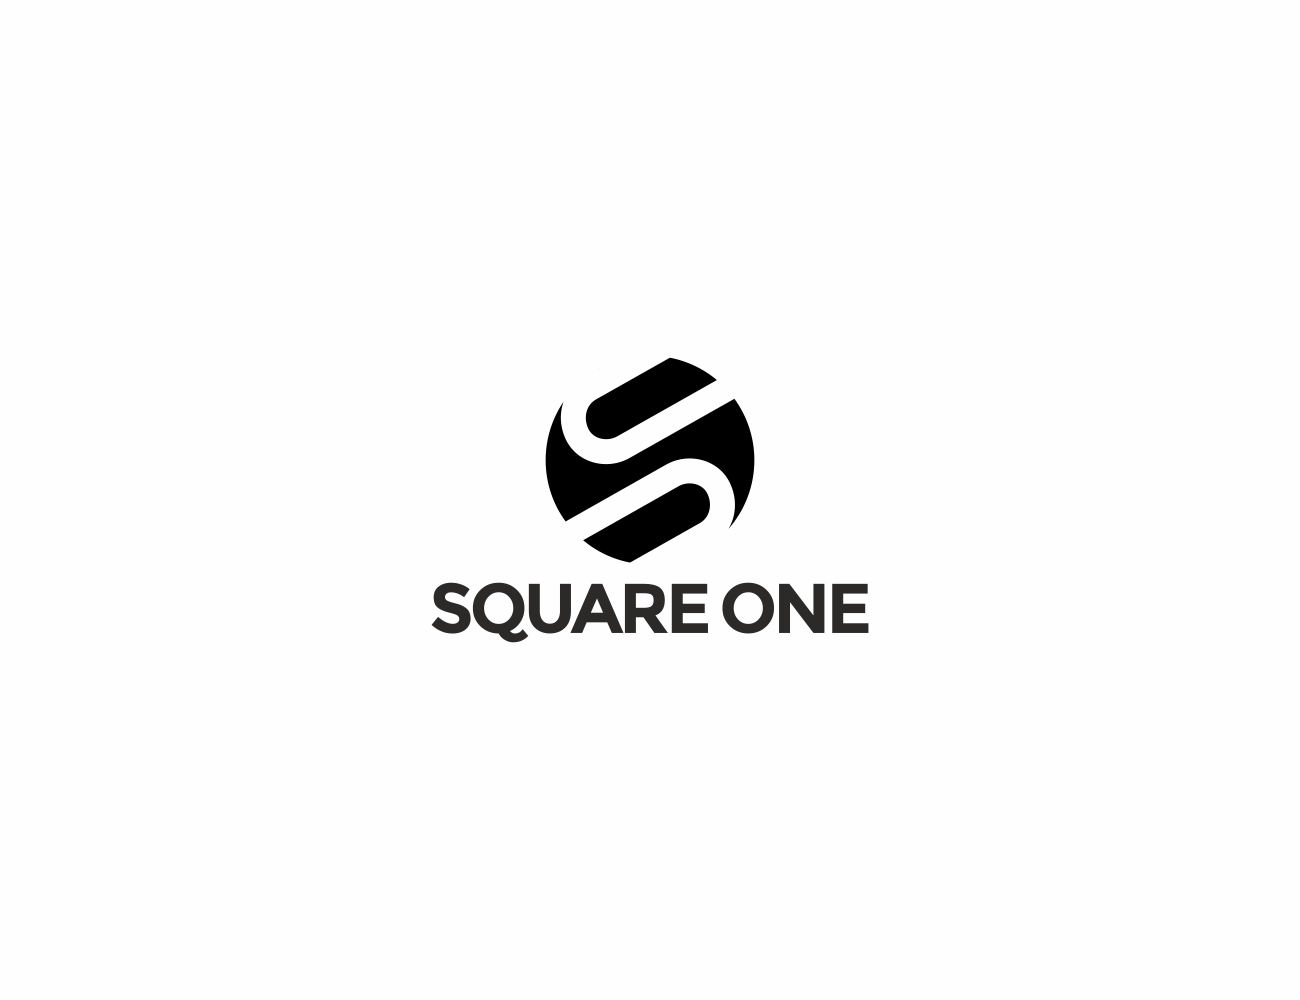 Elegant Serious Apparel Store Logo Design For The Logo Can Say Square One But It Does Not Need To If It Can Be Written In A Custom Font Below By Edu Morente